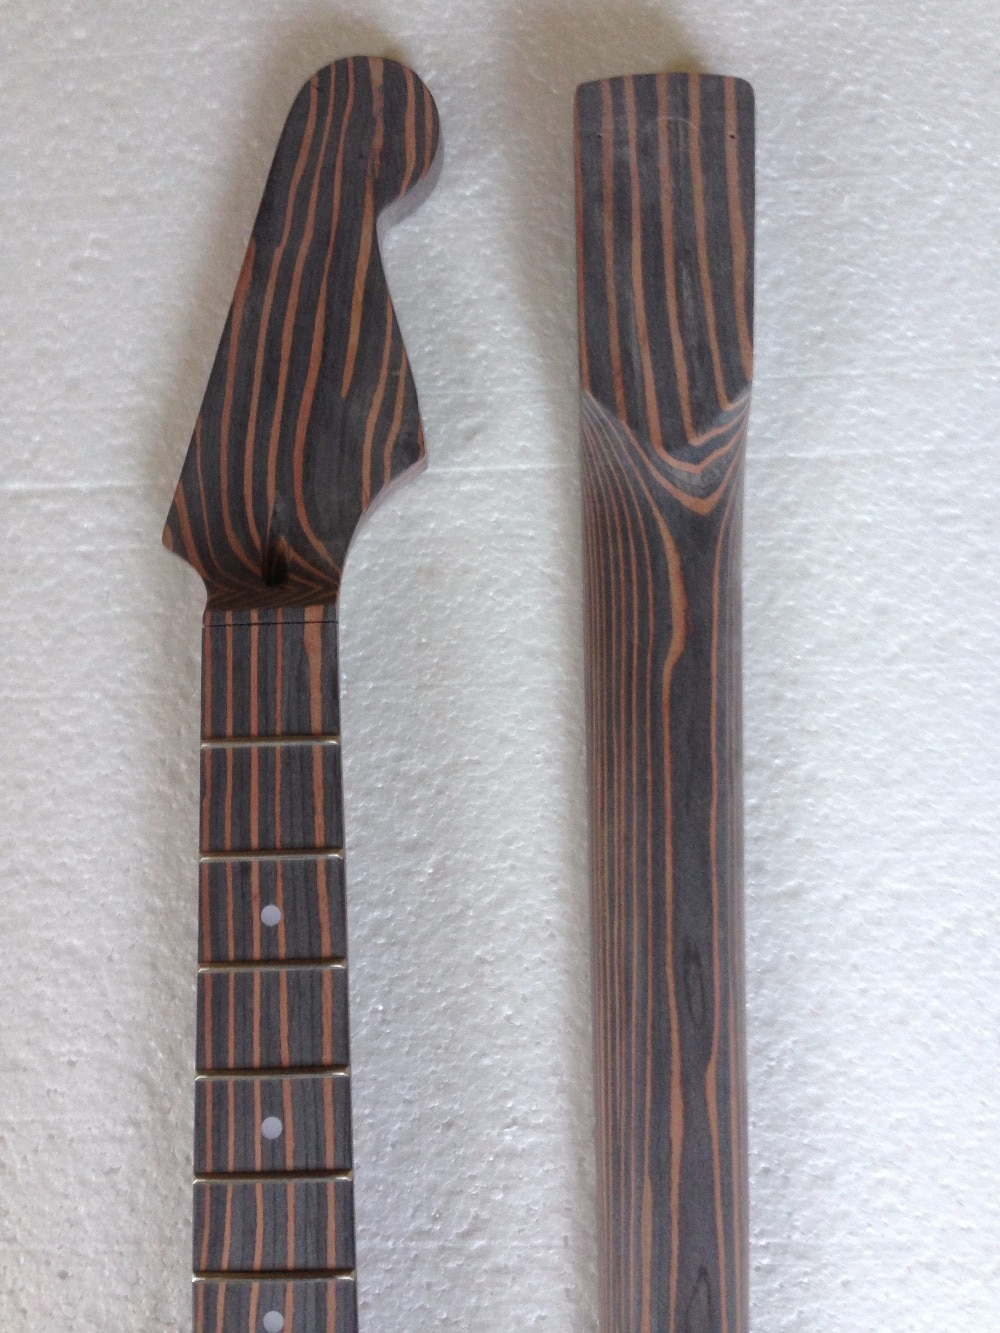 Free shipping  zebra wood guitar Neck  one piece wood neck  no painting  guitar shape can choose enlarge